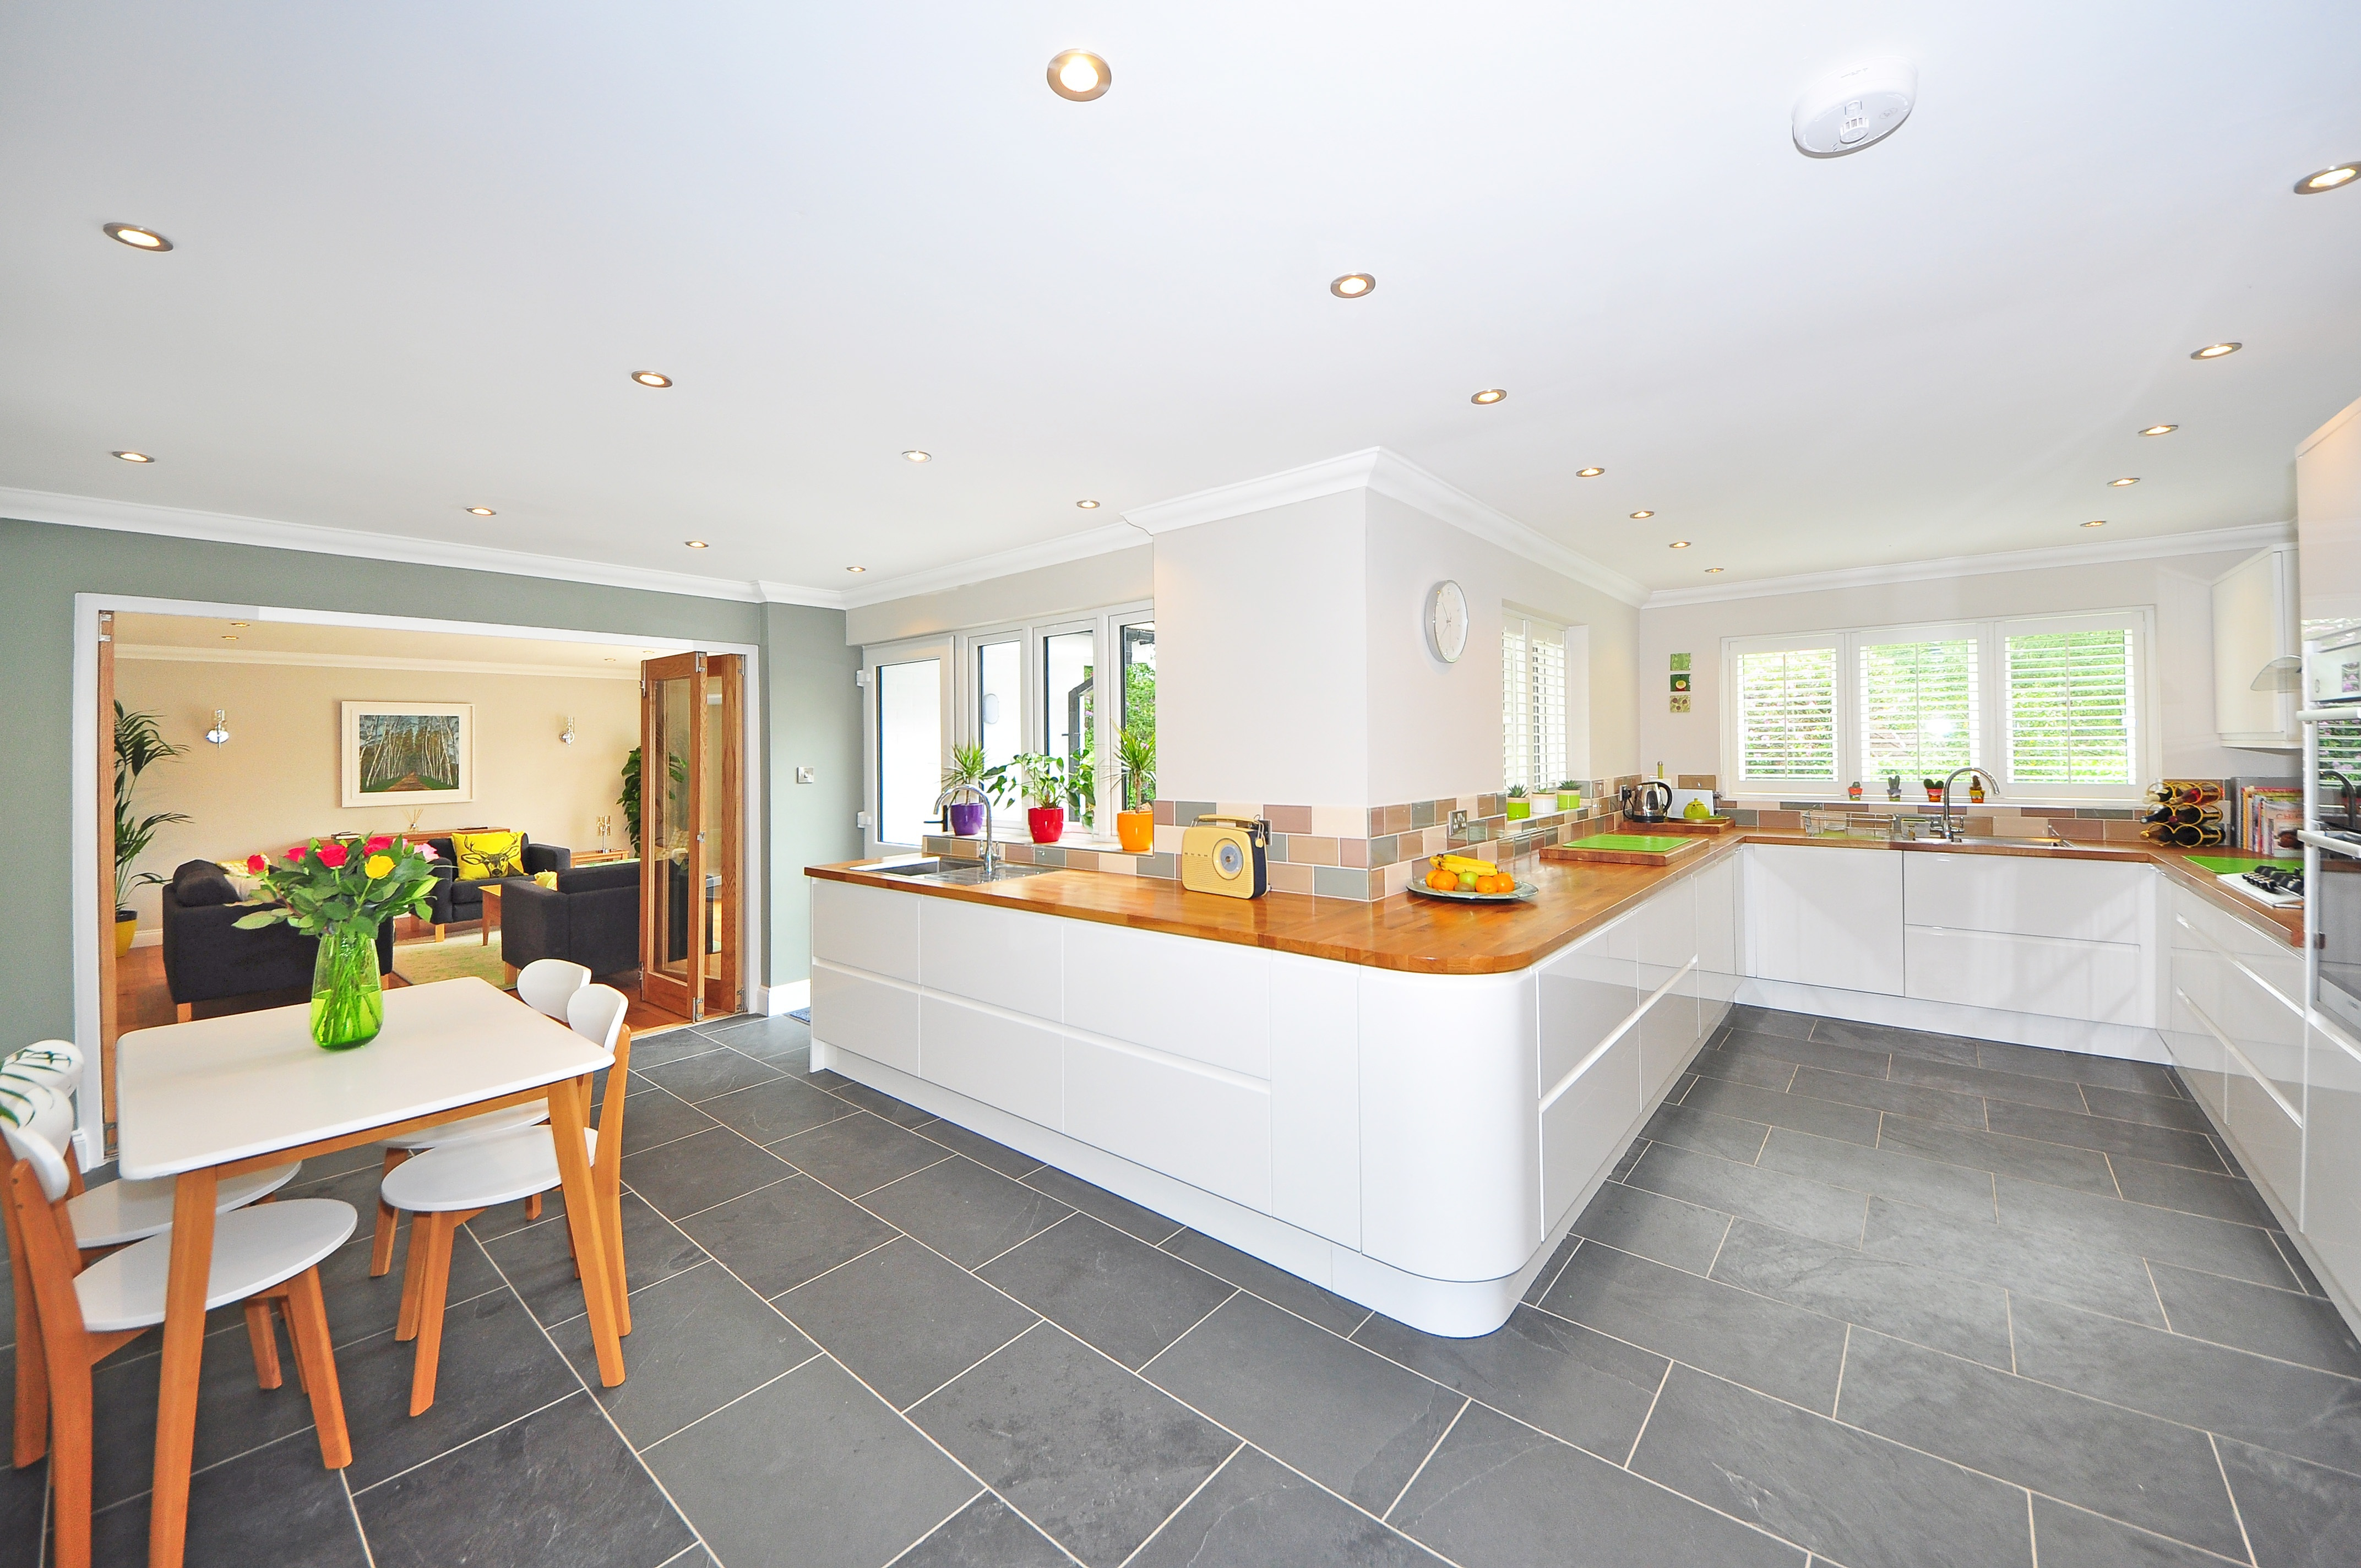 clean kitchen with grey tile floor and kitchen table